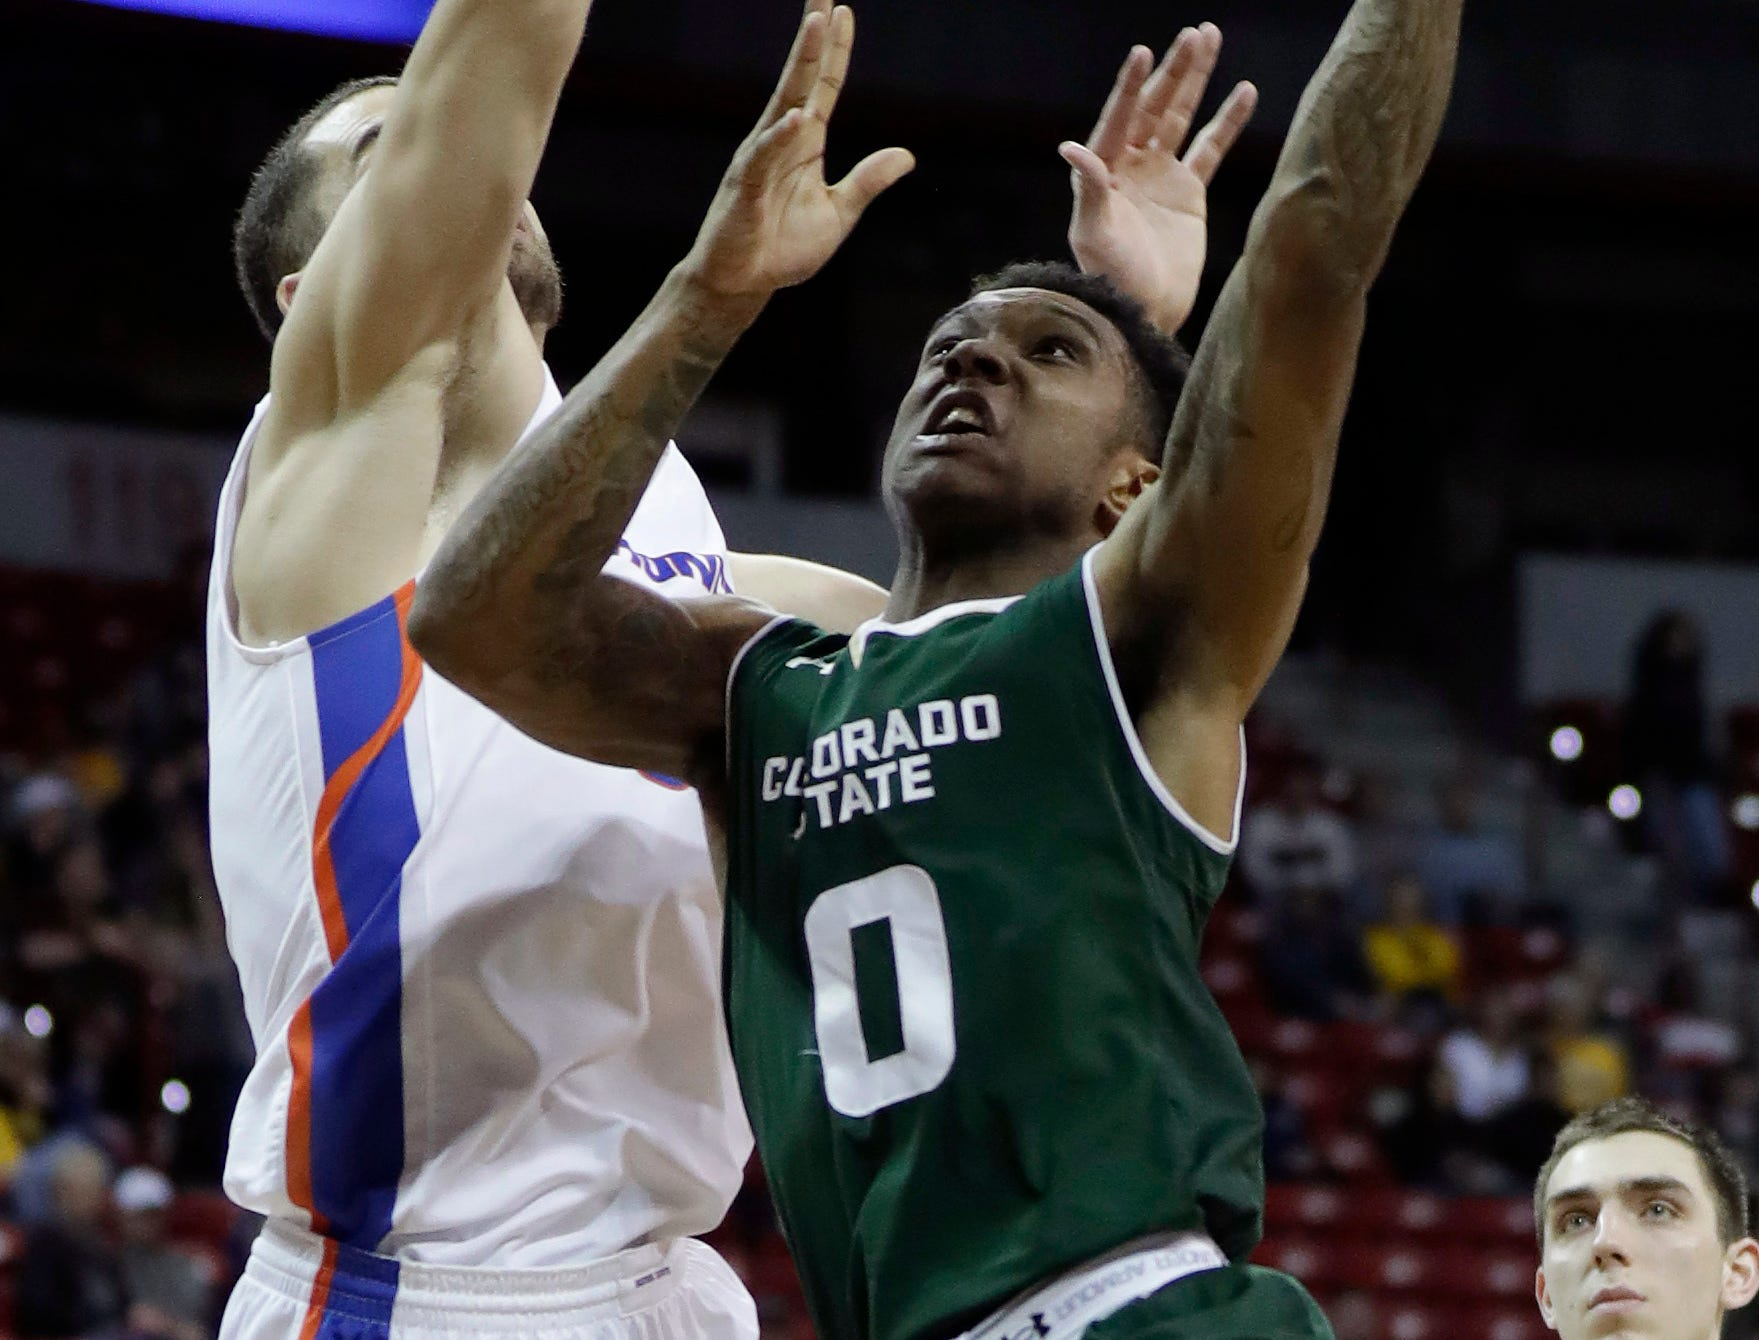 Colorado State's Hyron Edwards (0) shoots as Boise State's David Wacker defends during the second half of an NCAA college basketball game in the Mountain West Conference tournament, Wednesday, March 13, 2019, in Las Vegas.